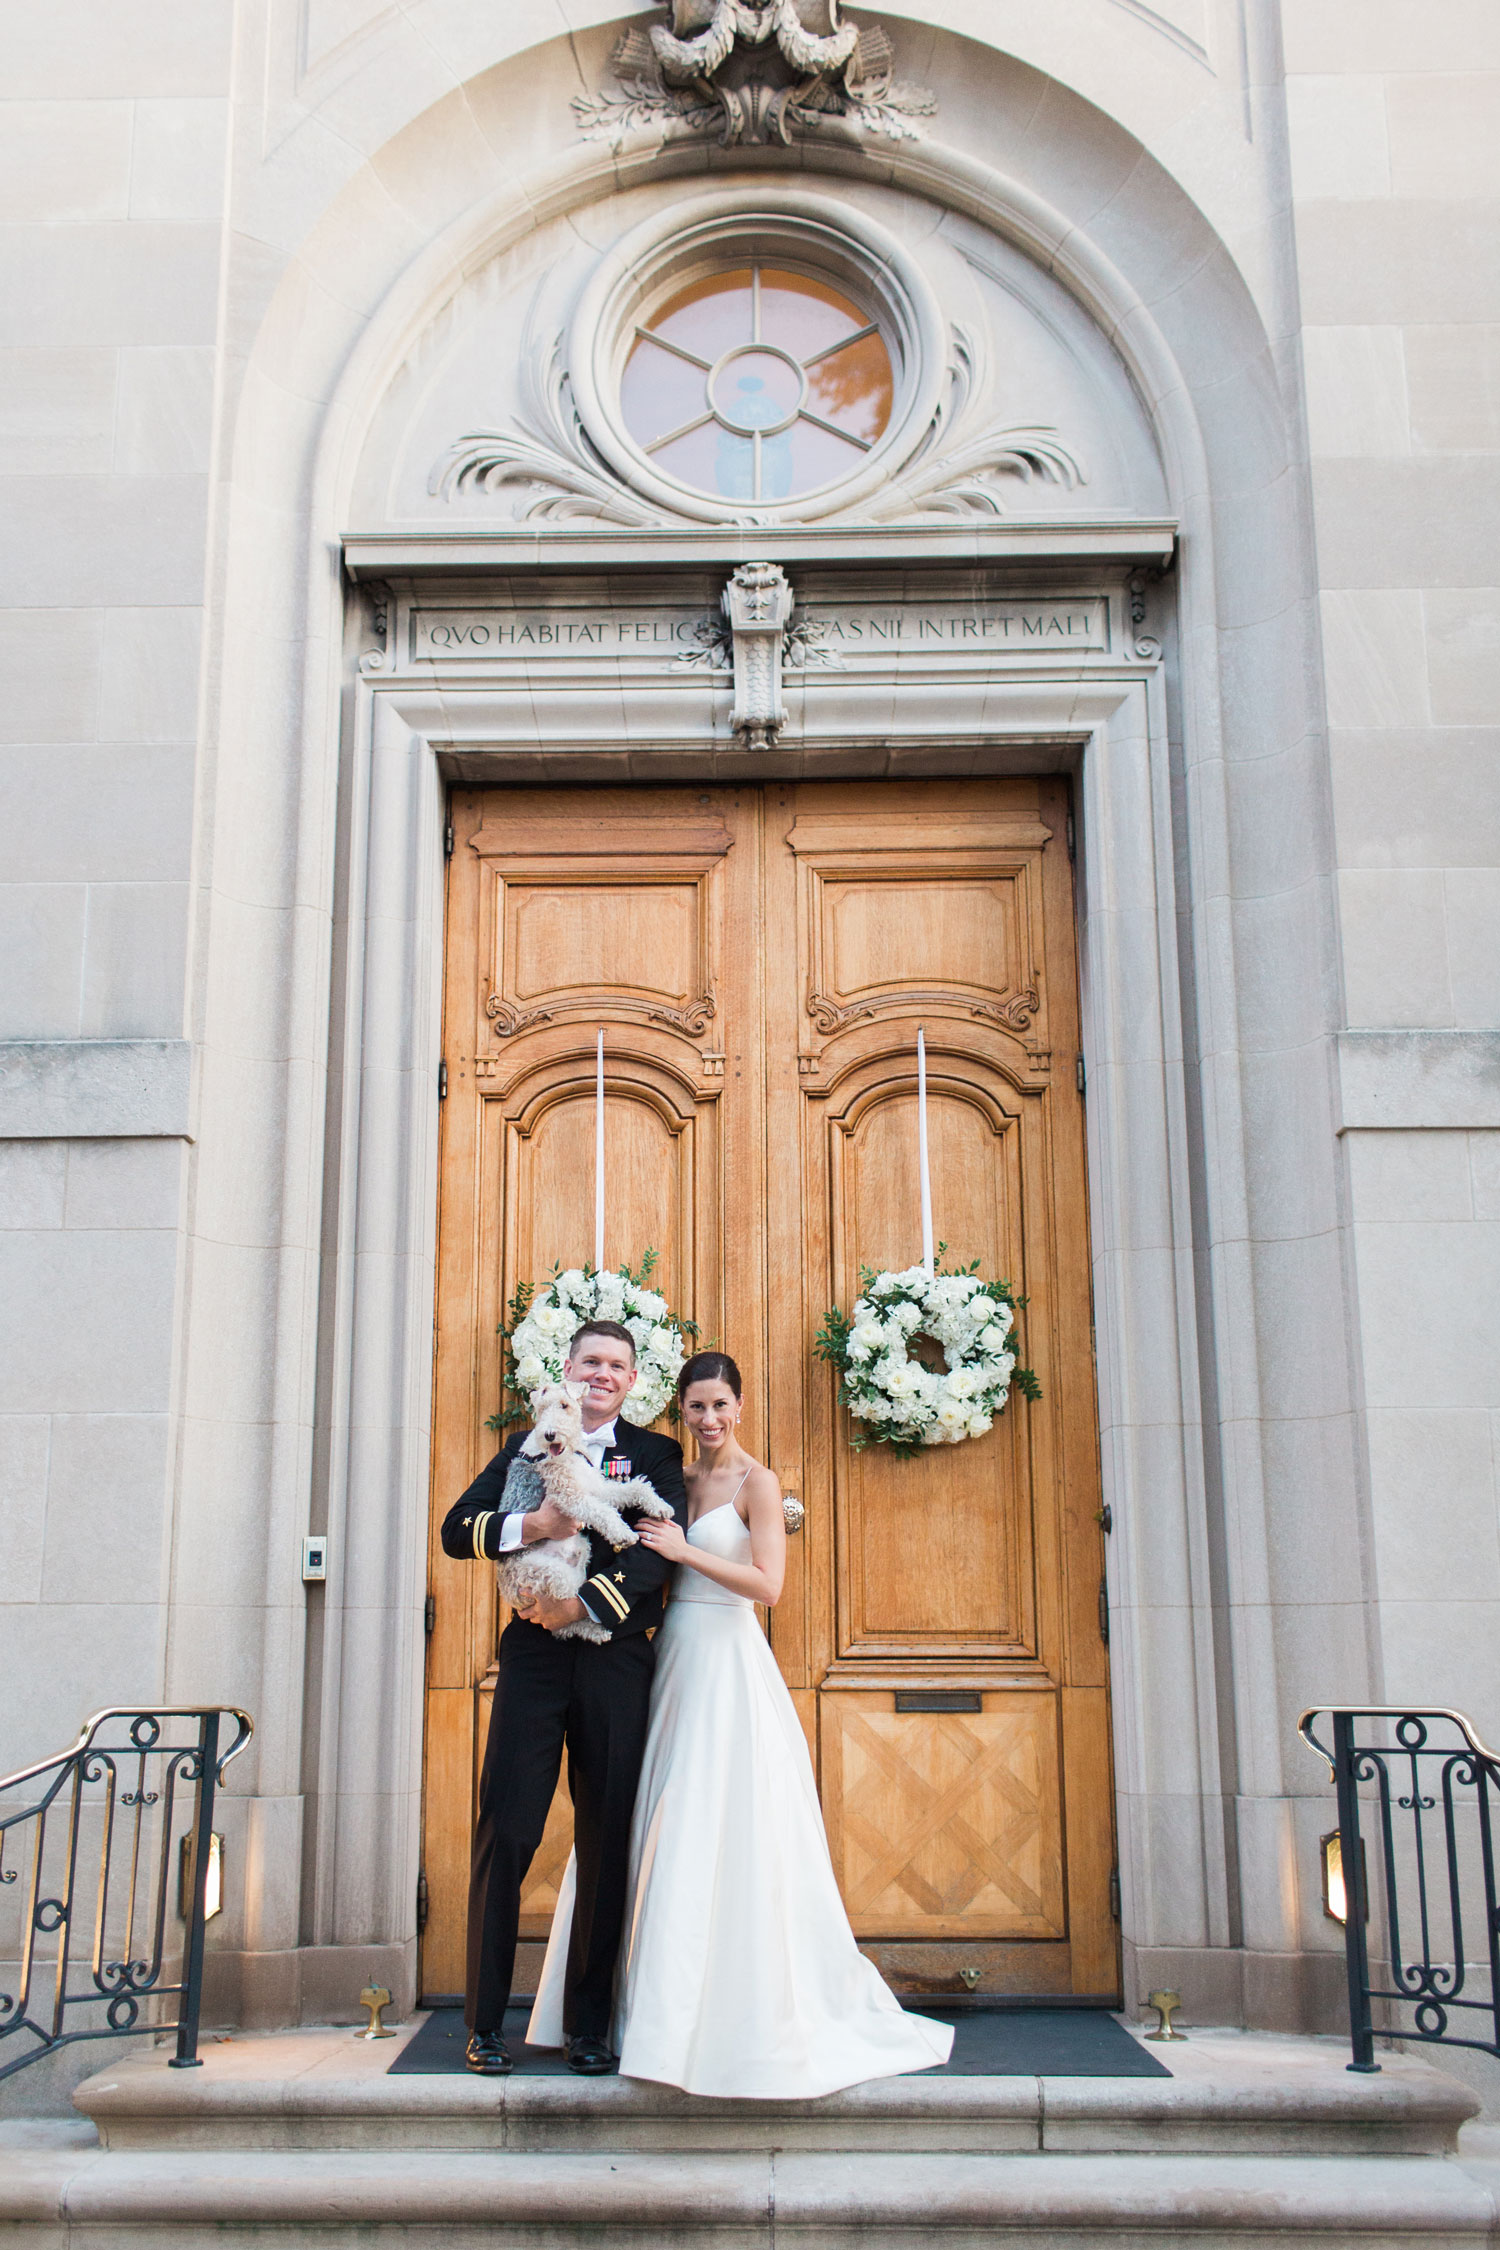 cute photo of bride and groom in front of wedding ceremony venue with dog holding puppy